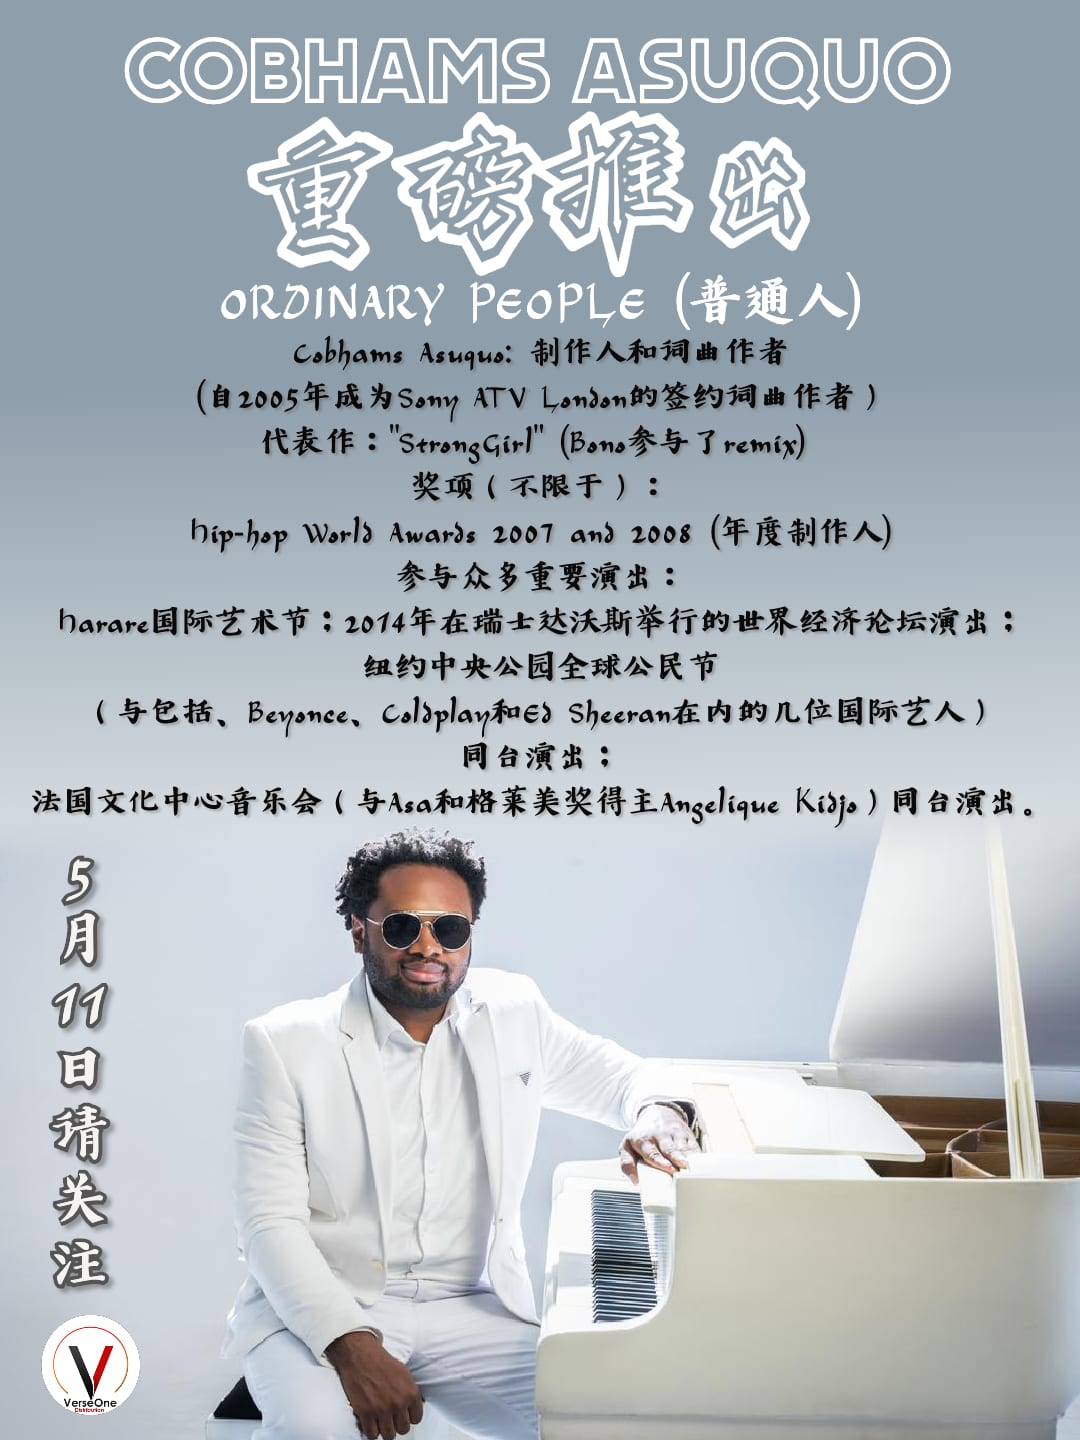 Tracklist (in chinese) of 'Ordinary People' by Cobham Asuquo